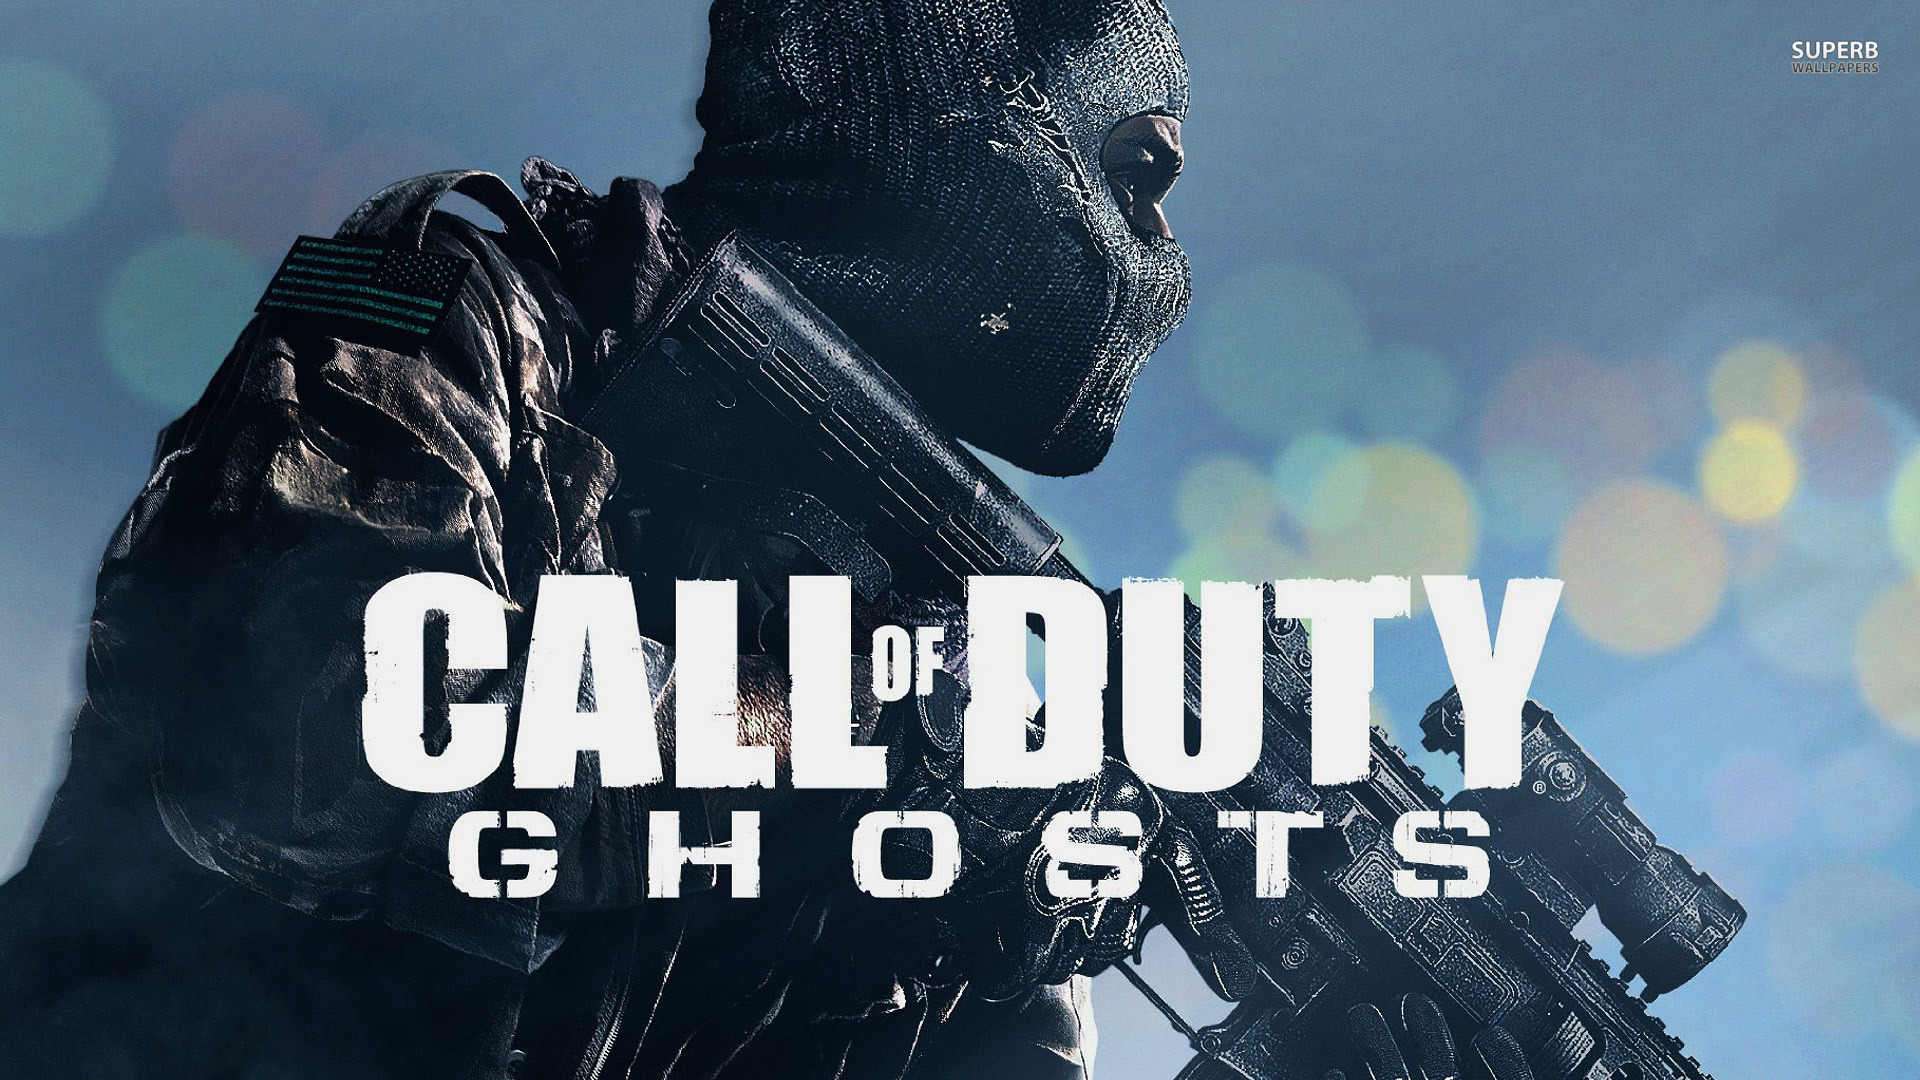 Download Hd 1920x1080 Call Of Duty Ghosts Pc Wallpaper Id215892